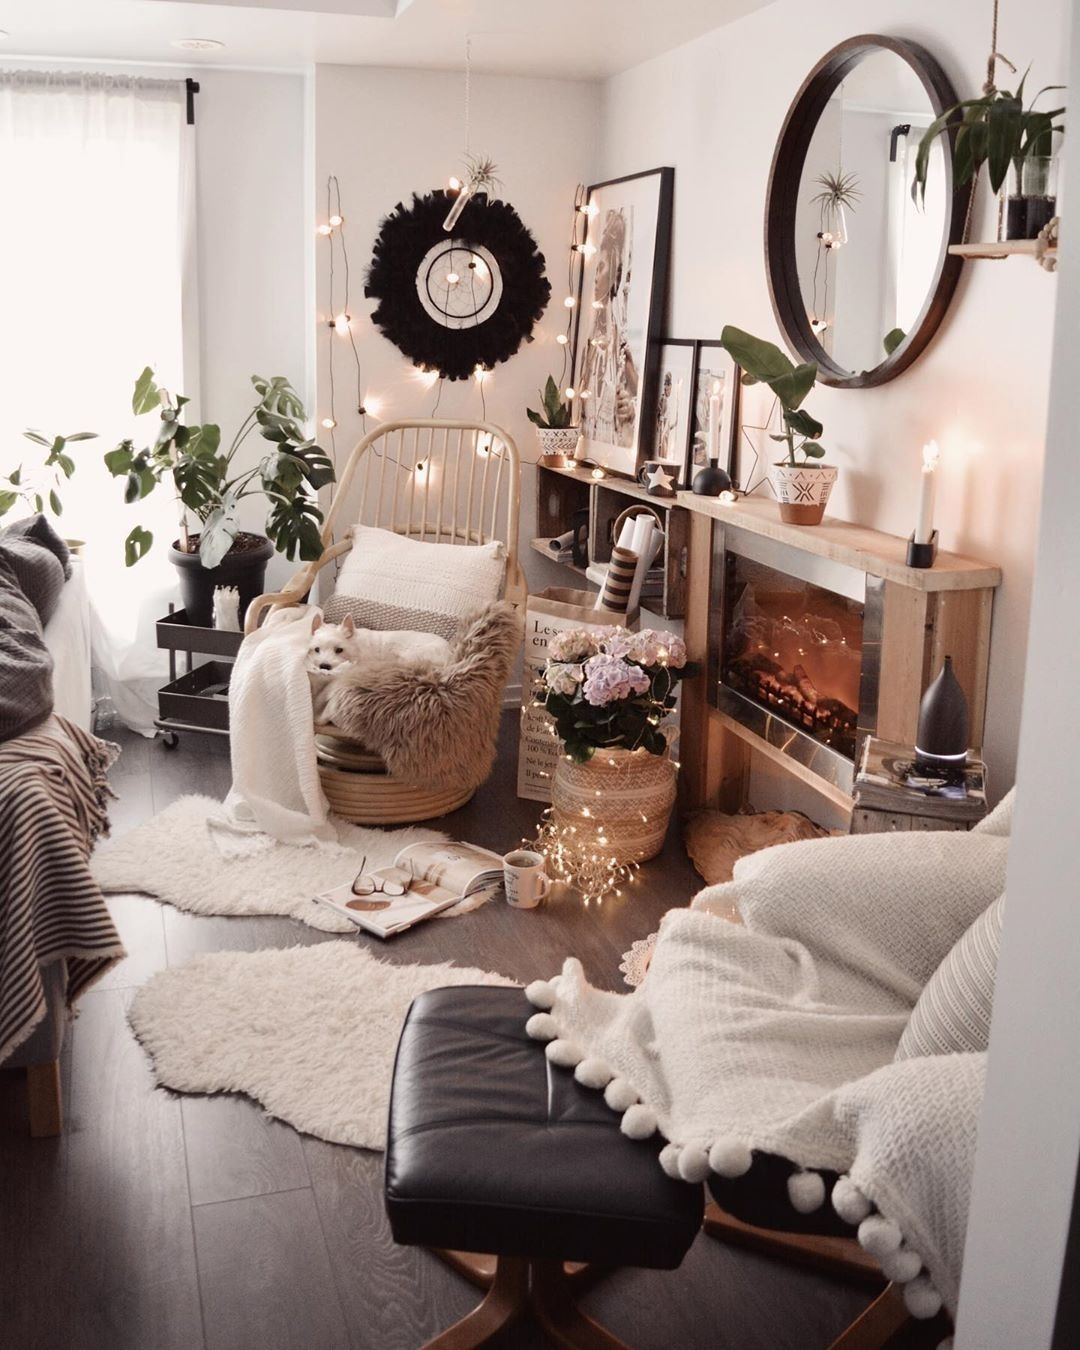 Pleasing Boho Chic Room Ideas Living Room On Appealing Pin by Evelyn Storm On Bohemian Home Decor On Boho Chic Room Ideas Living Room